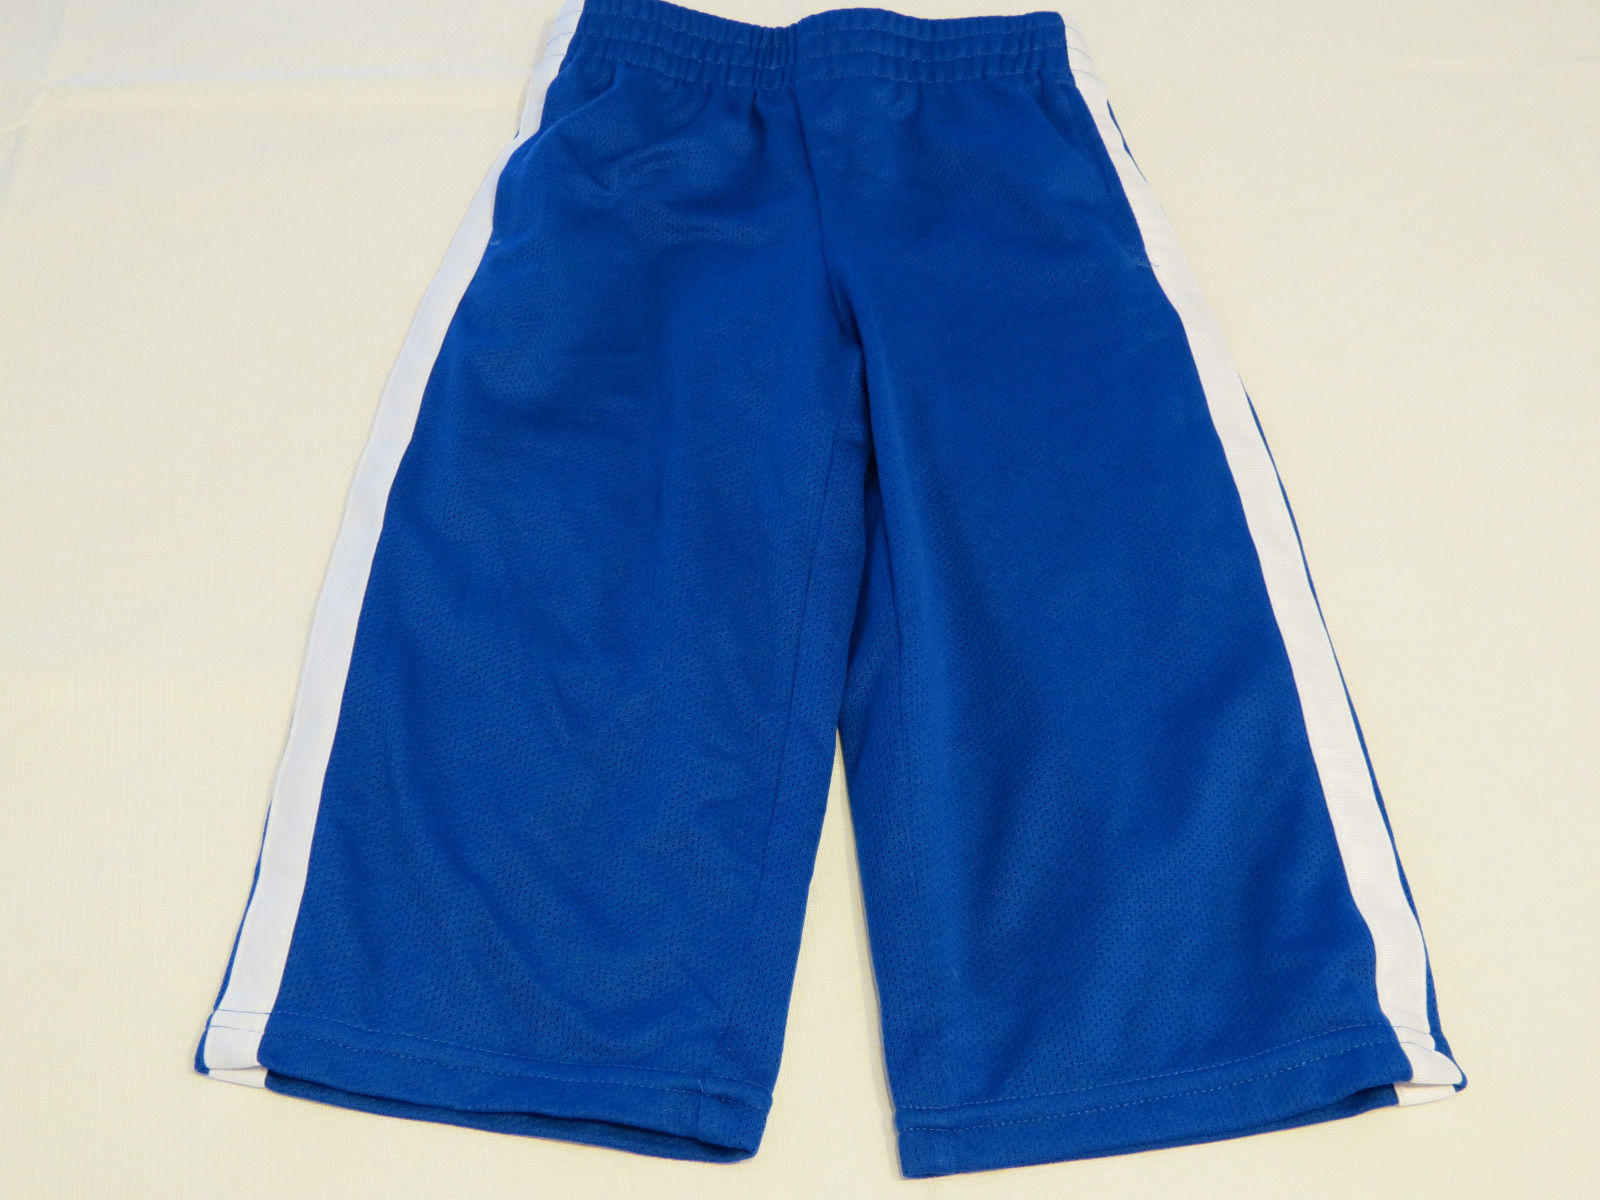 Primary image for The Children's Place active pants 12 M baby boys NWT blue white Athletics Dept